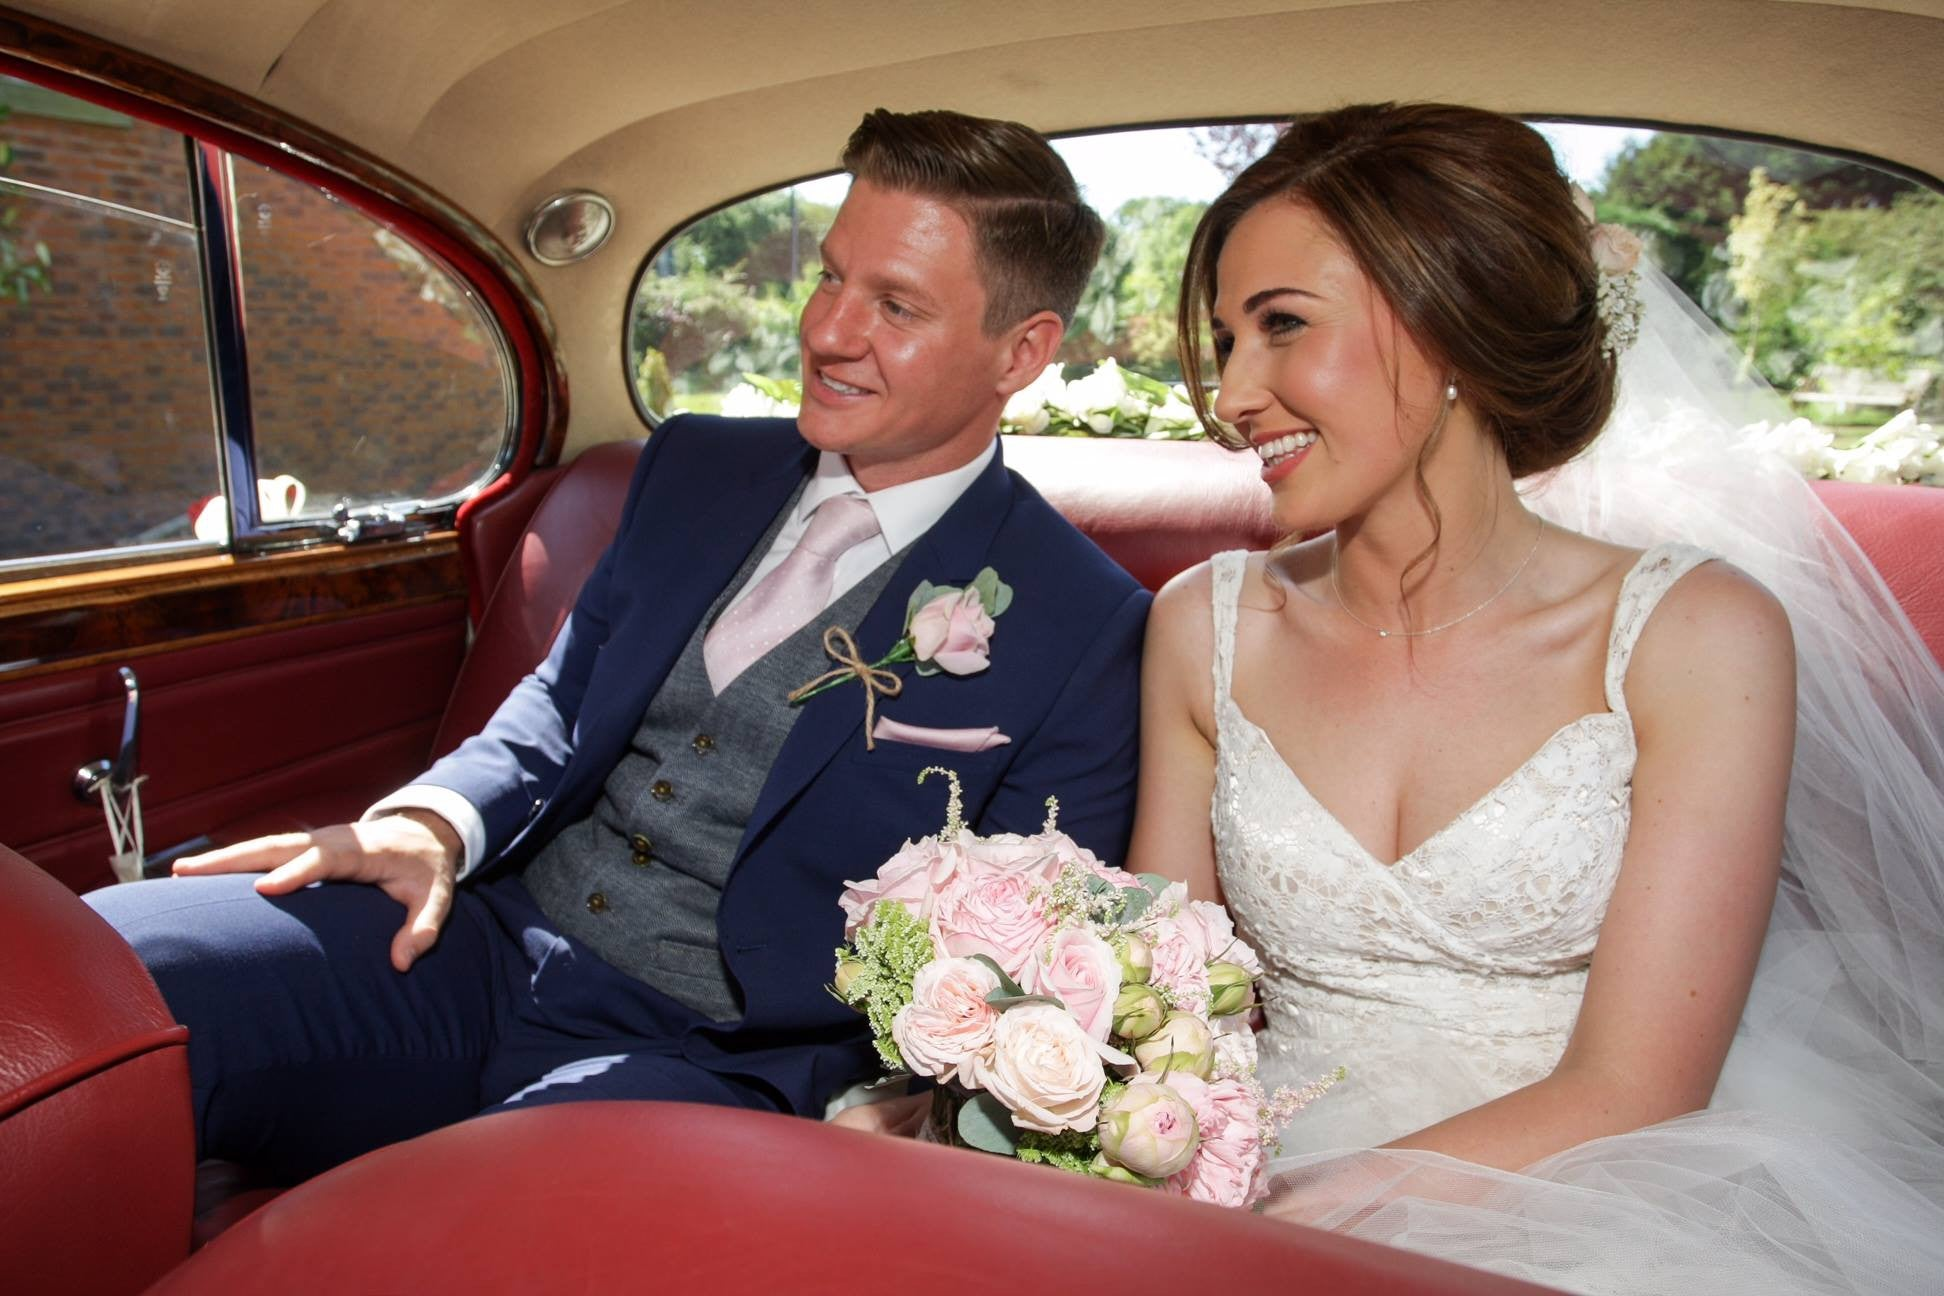 Bride and Groom in the wedding car with pink Rose bouquet and buttonhole.